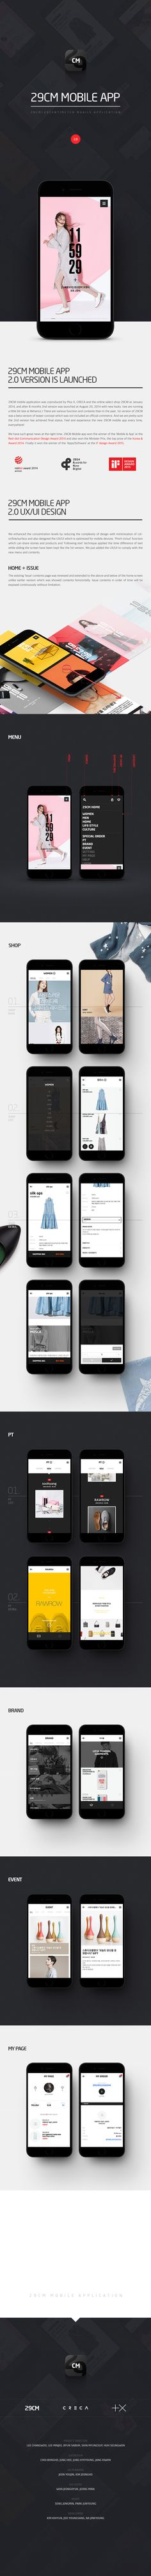 29CM Mobile E-Commerce Fashion App UI Design /// Designed by PlusX /// PlusX Website_ http://www.plus-ex.com/ Brand Xperience Designer Blog_http://www.shind.me/